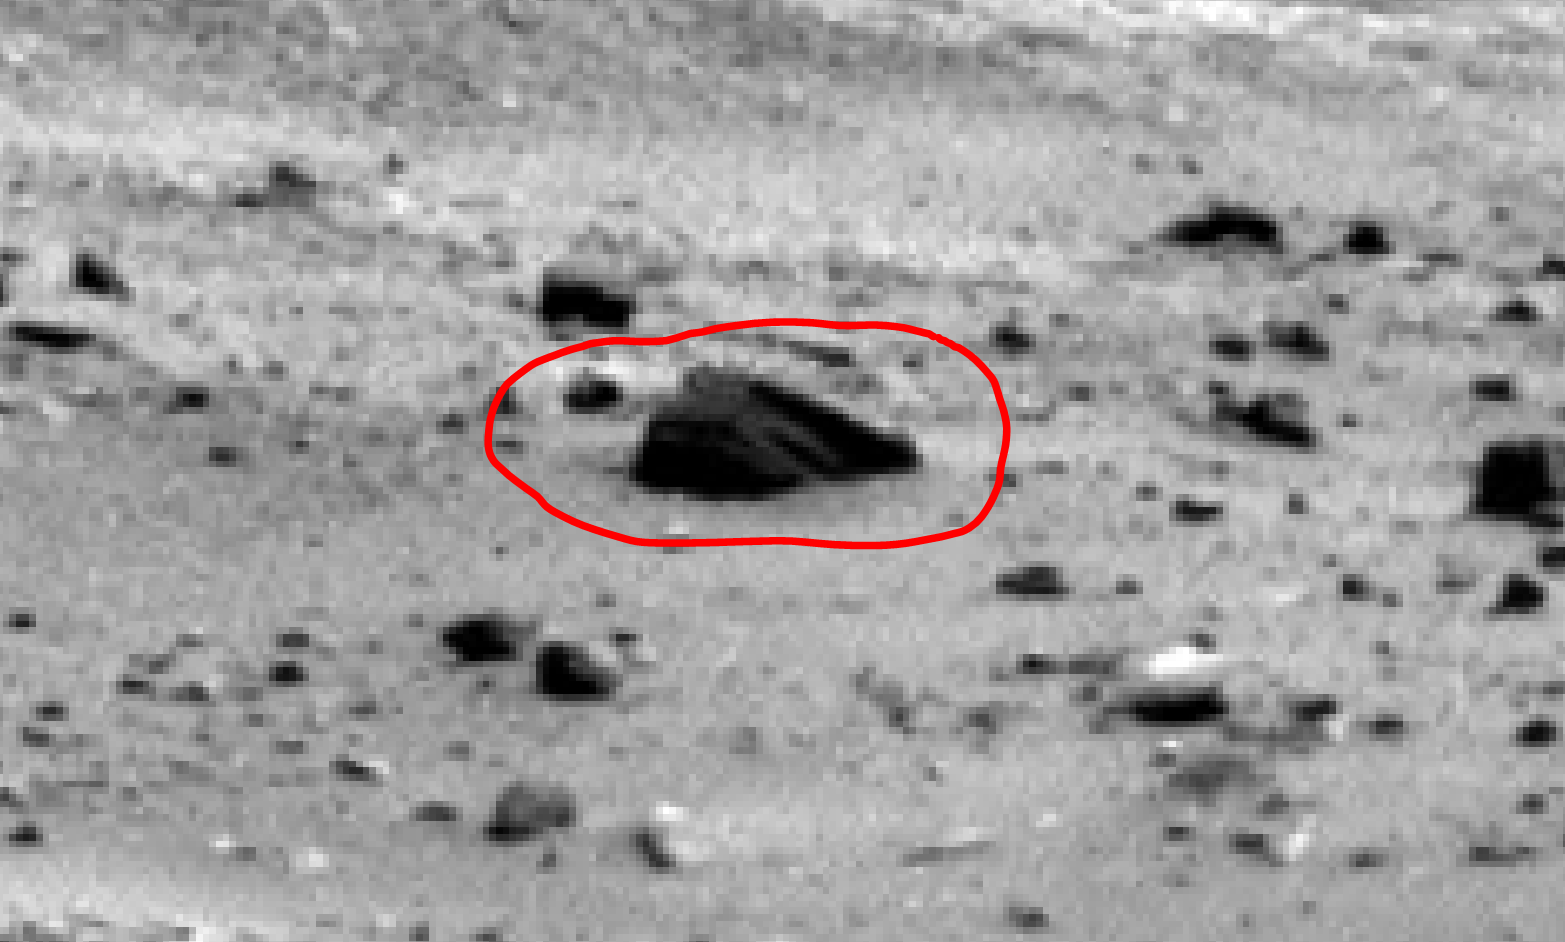 mars sol 1400 anomaly artifacts 1 was life on mars